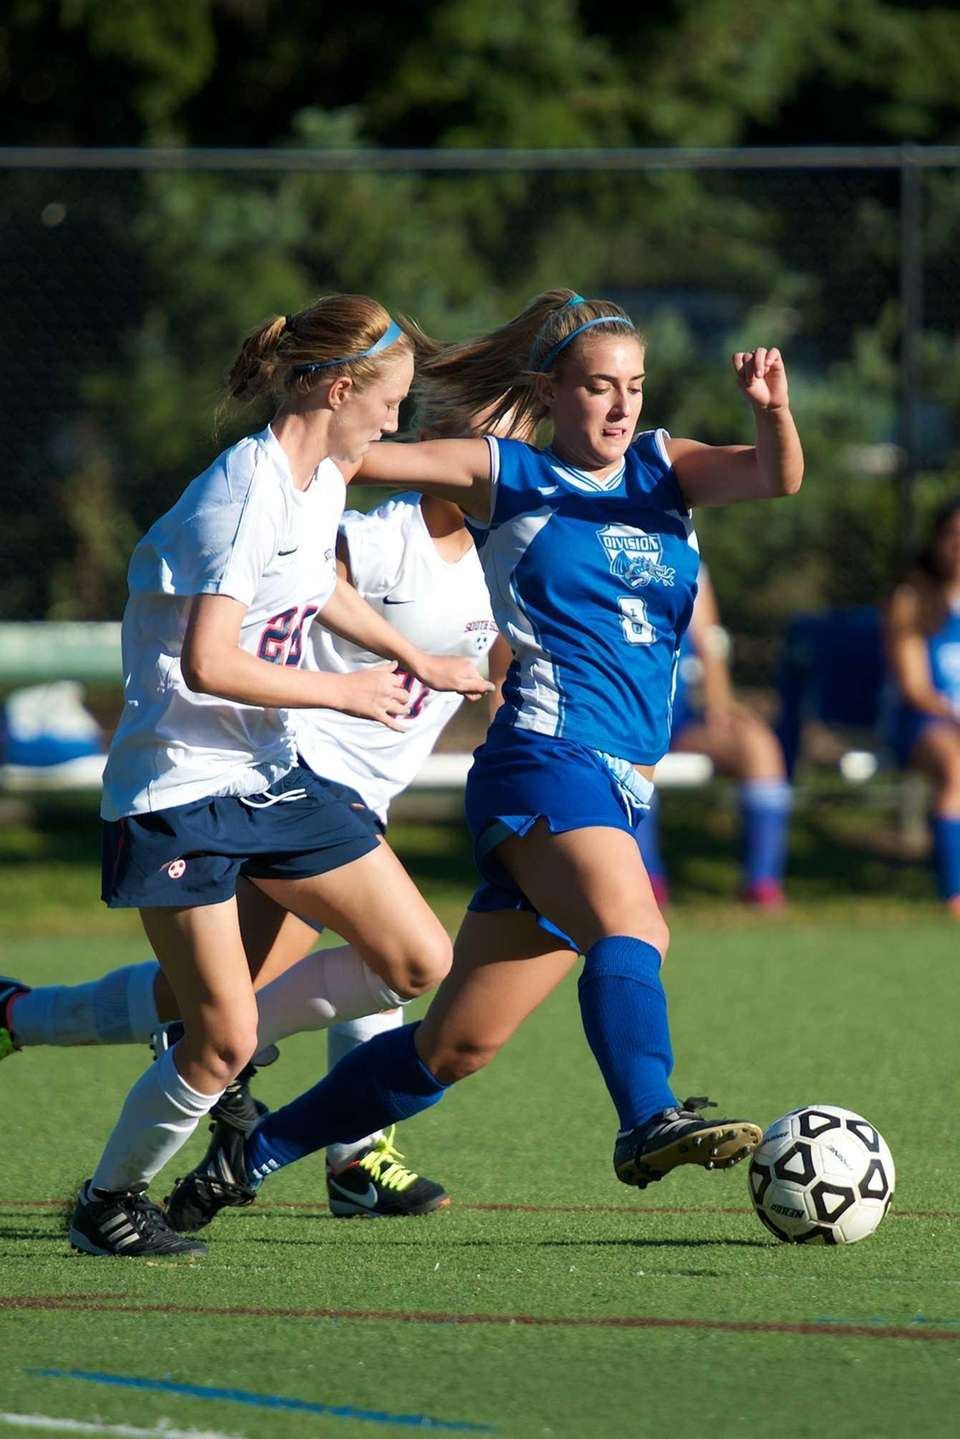 Division's Alexa Schneider dribbles the ball as she